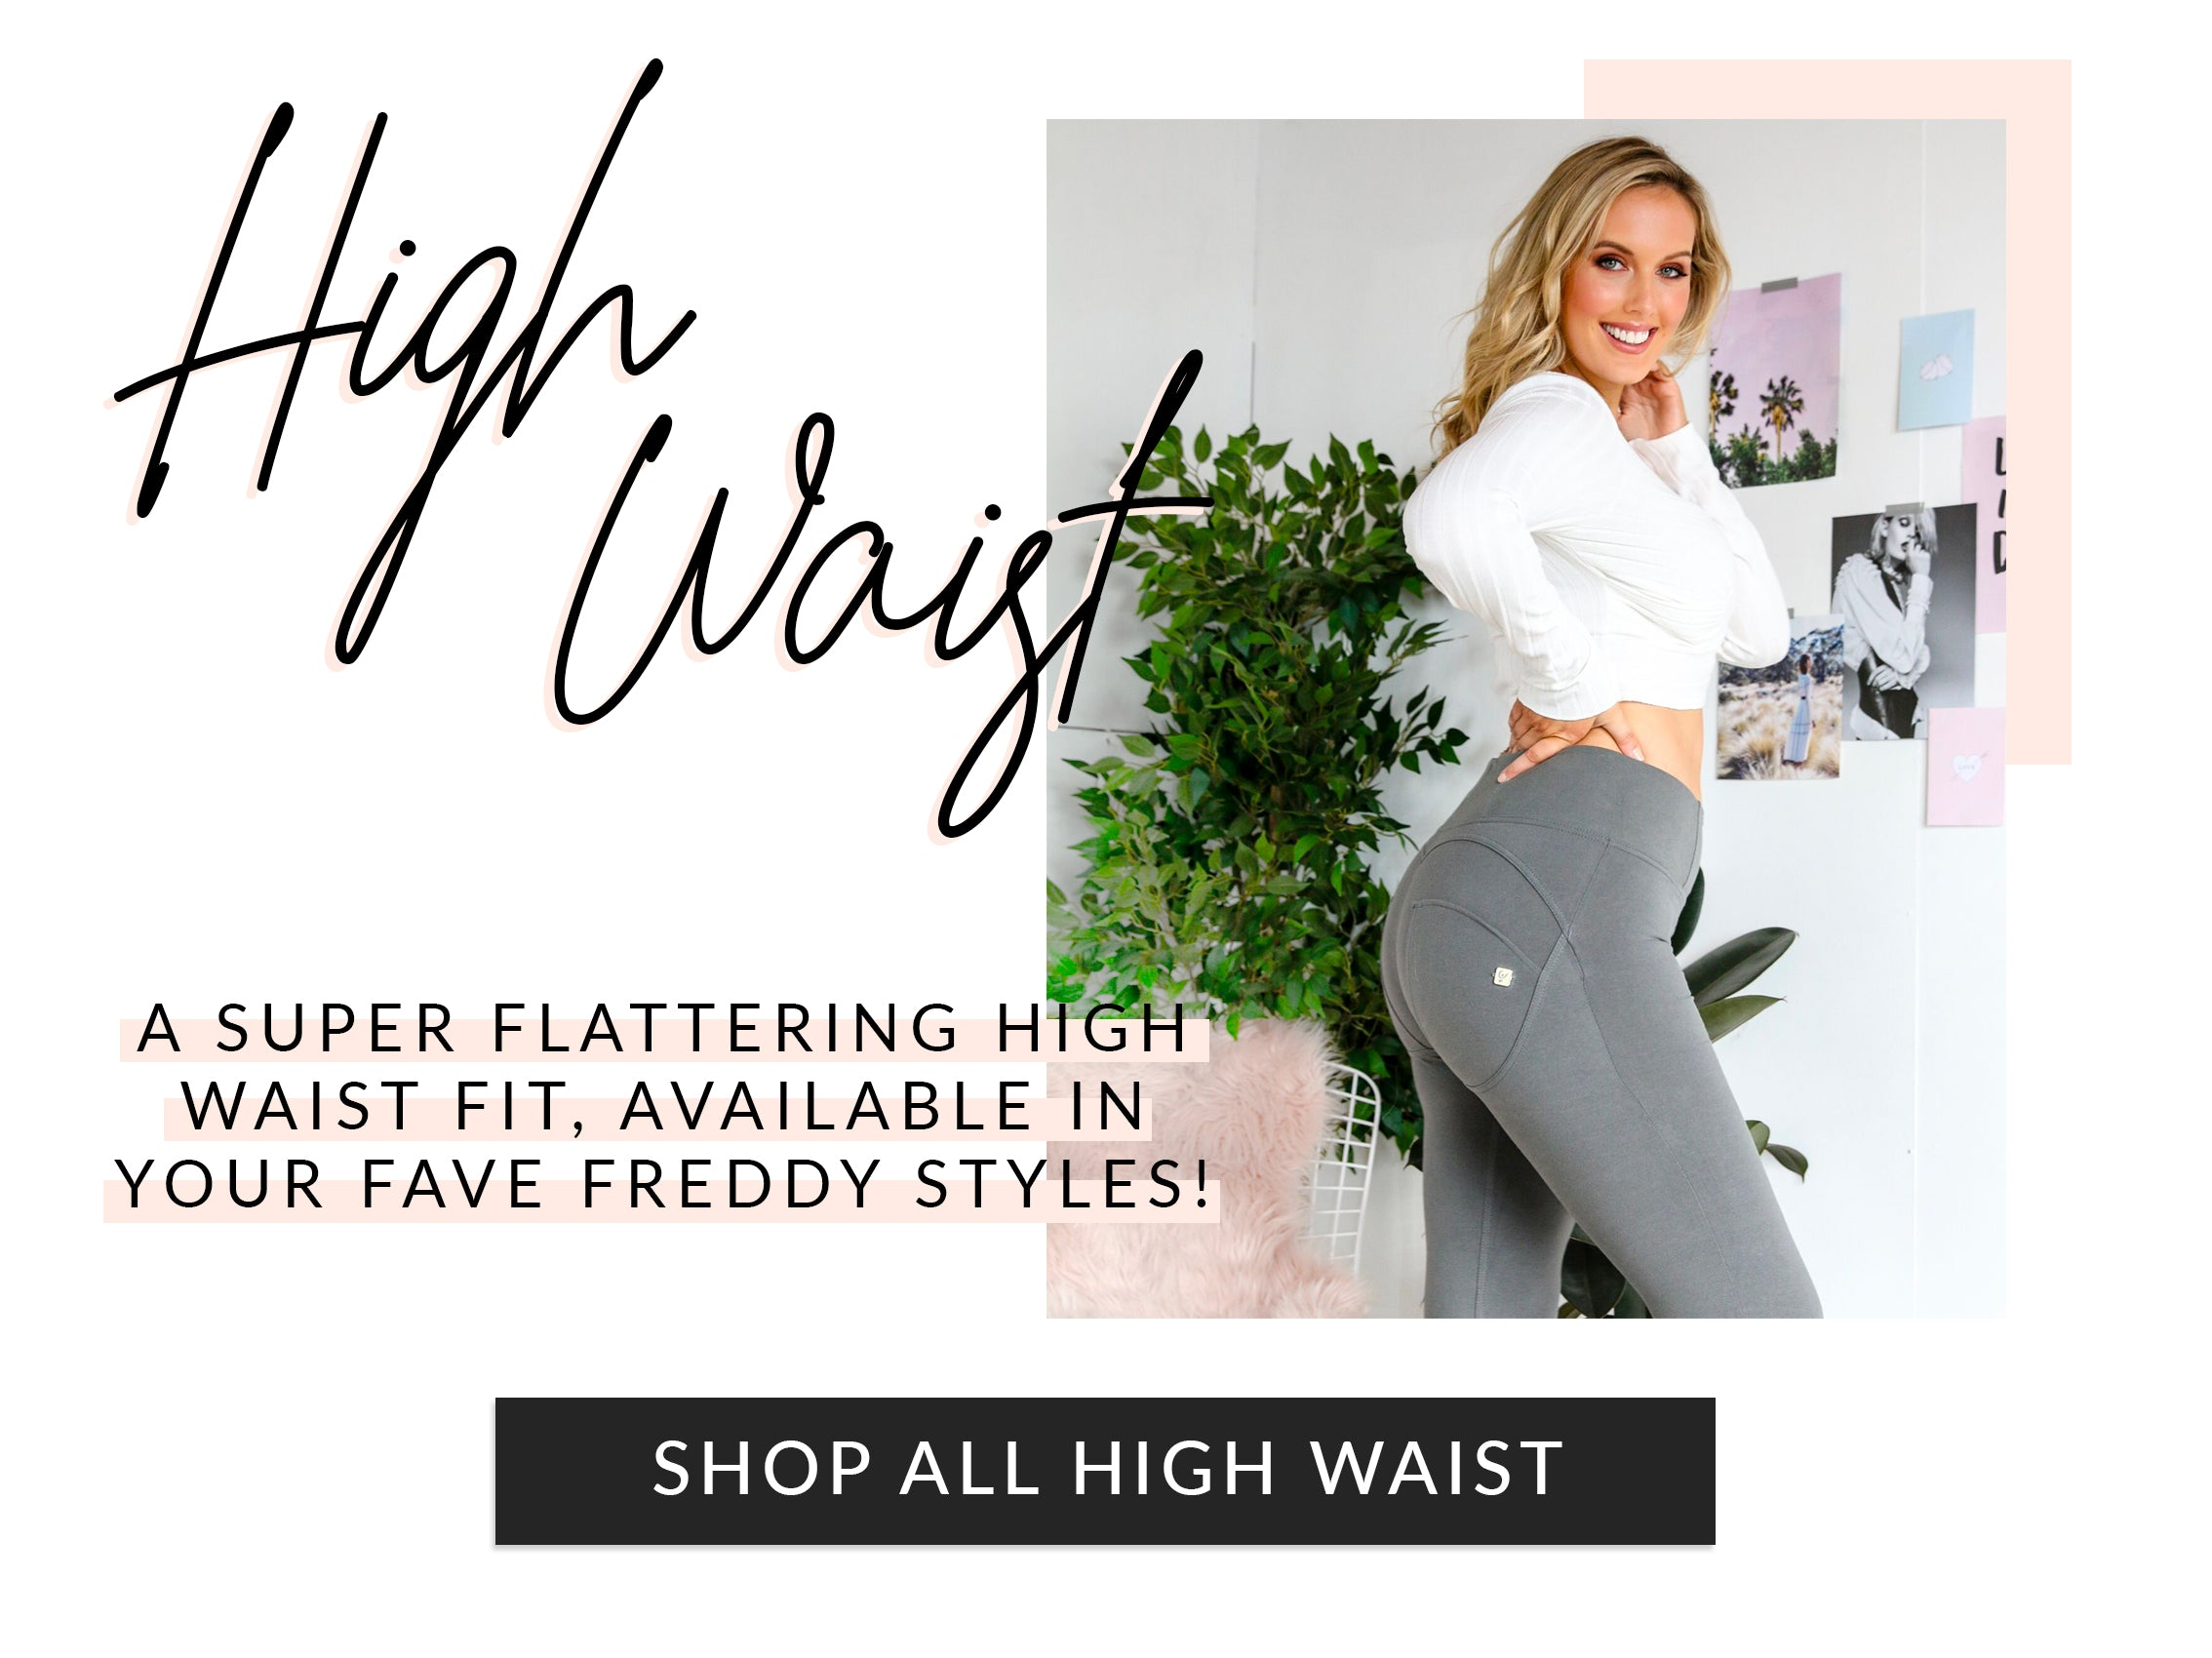 Shop all high waist